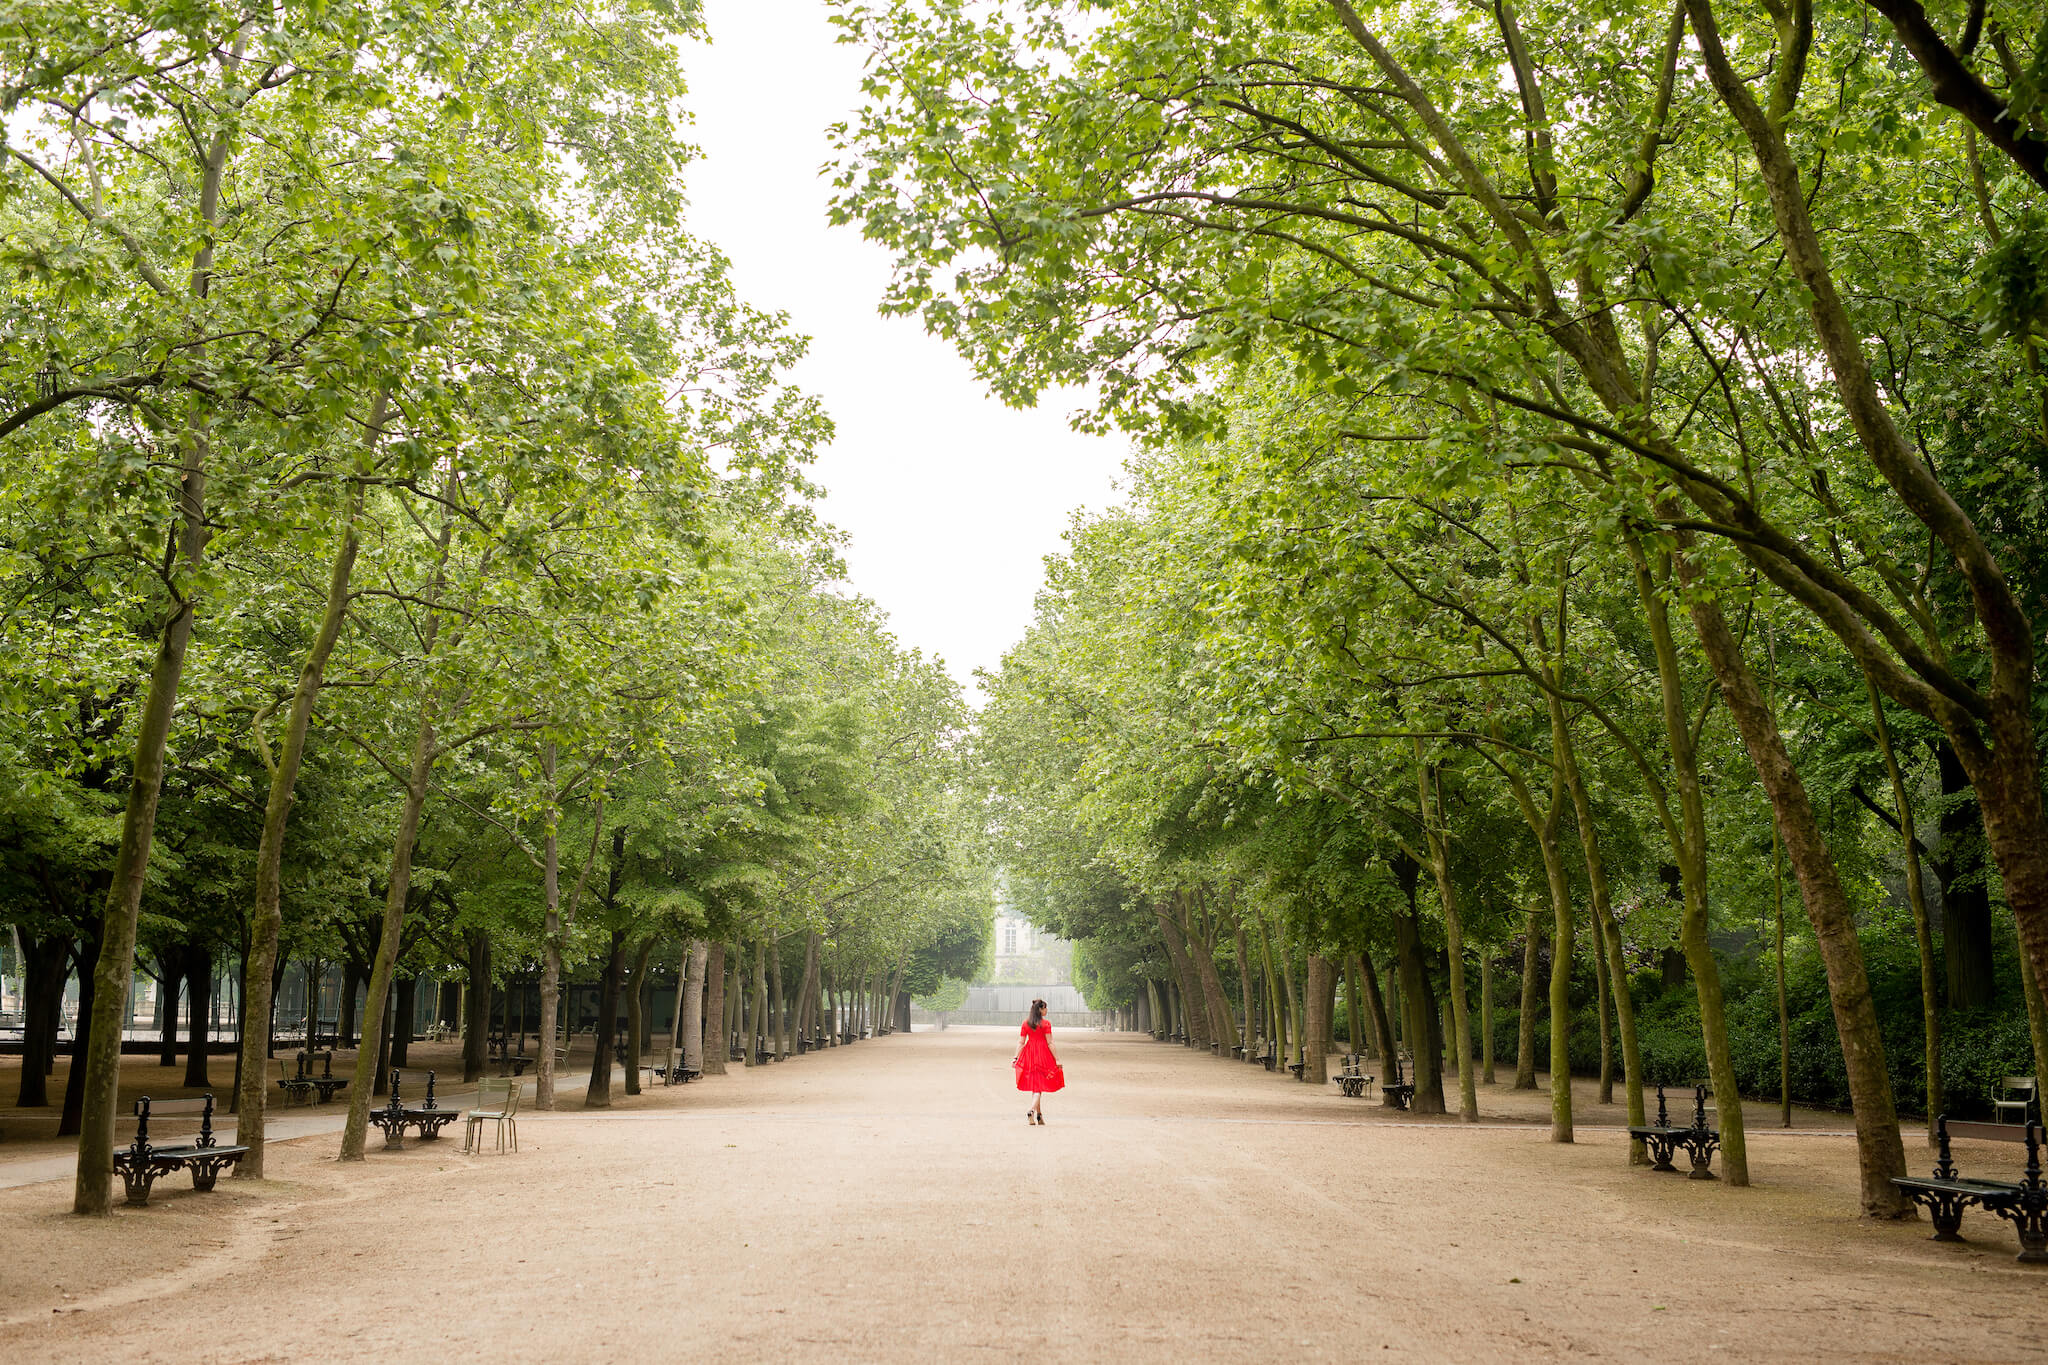 Rebecca Plotnick, travel photographer and blogger at Everyday Parisian, takes a twirl in an empty Tuileries garden, her bright red dress punctuating the verdant trees.